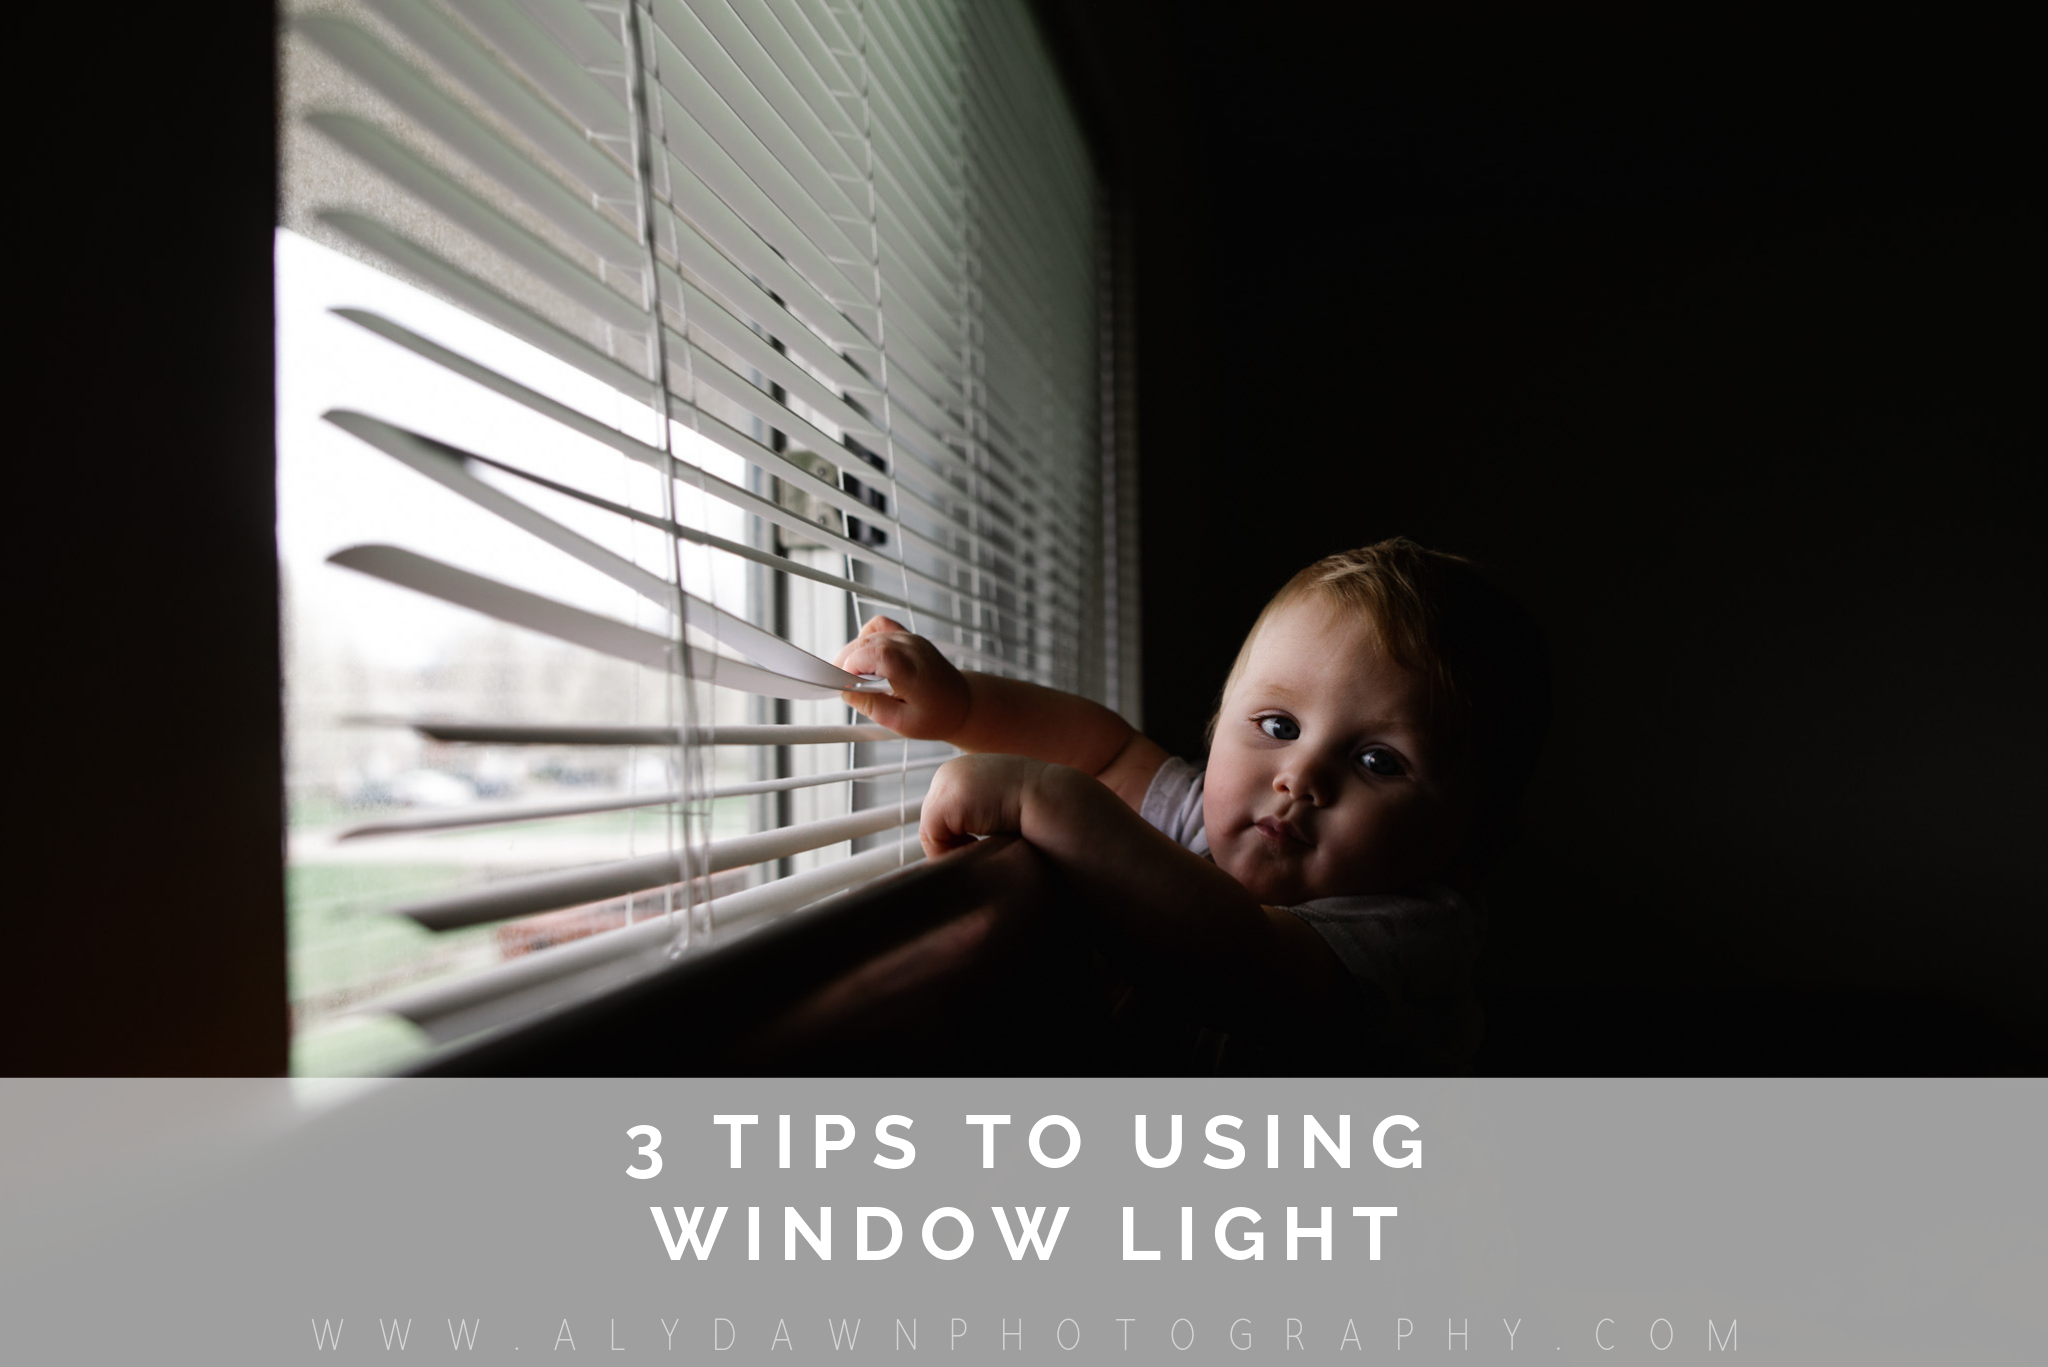 3 Tips to Using Window Light